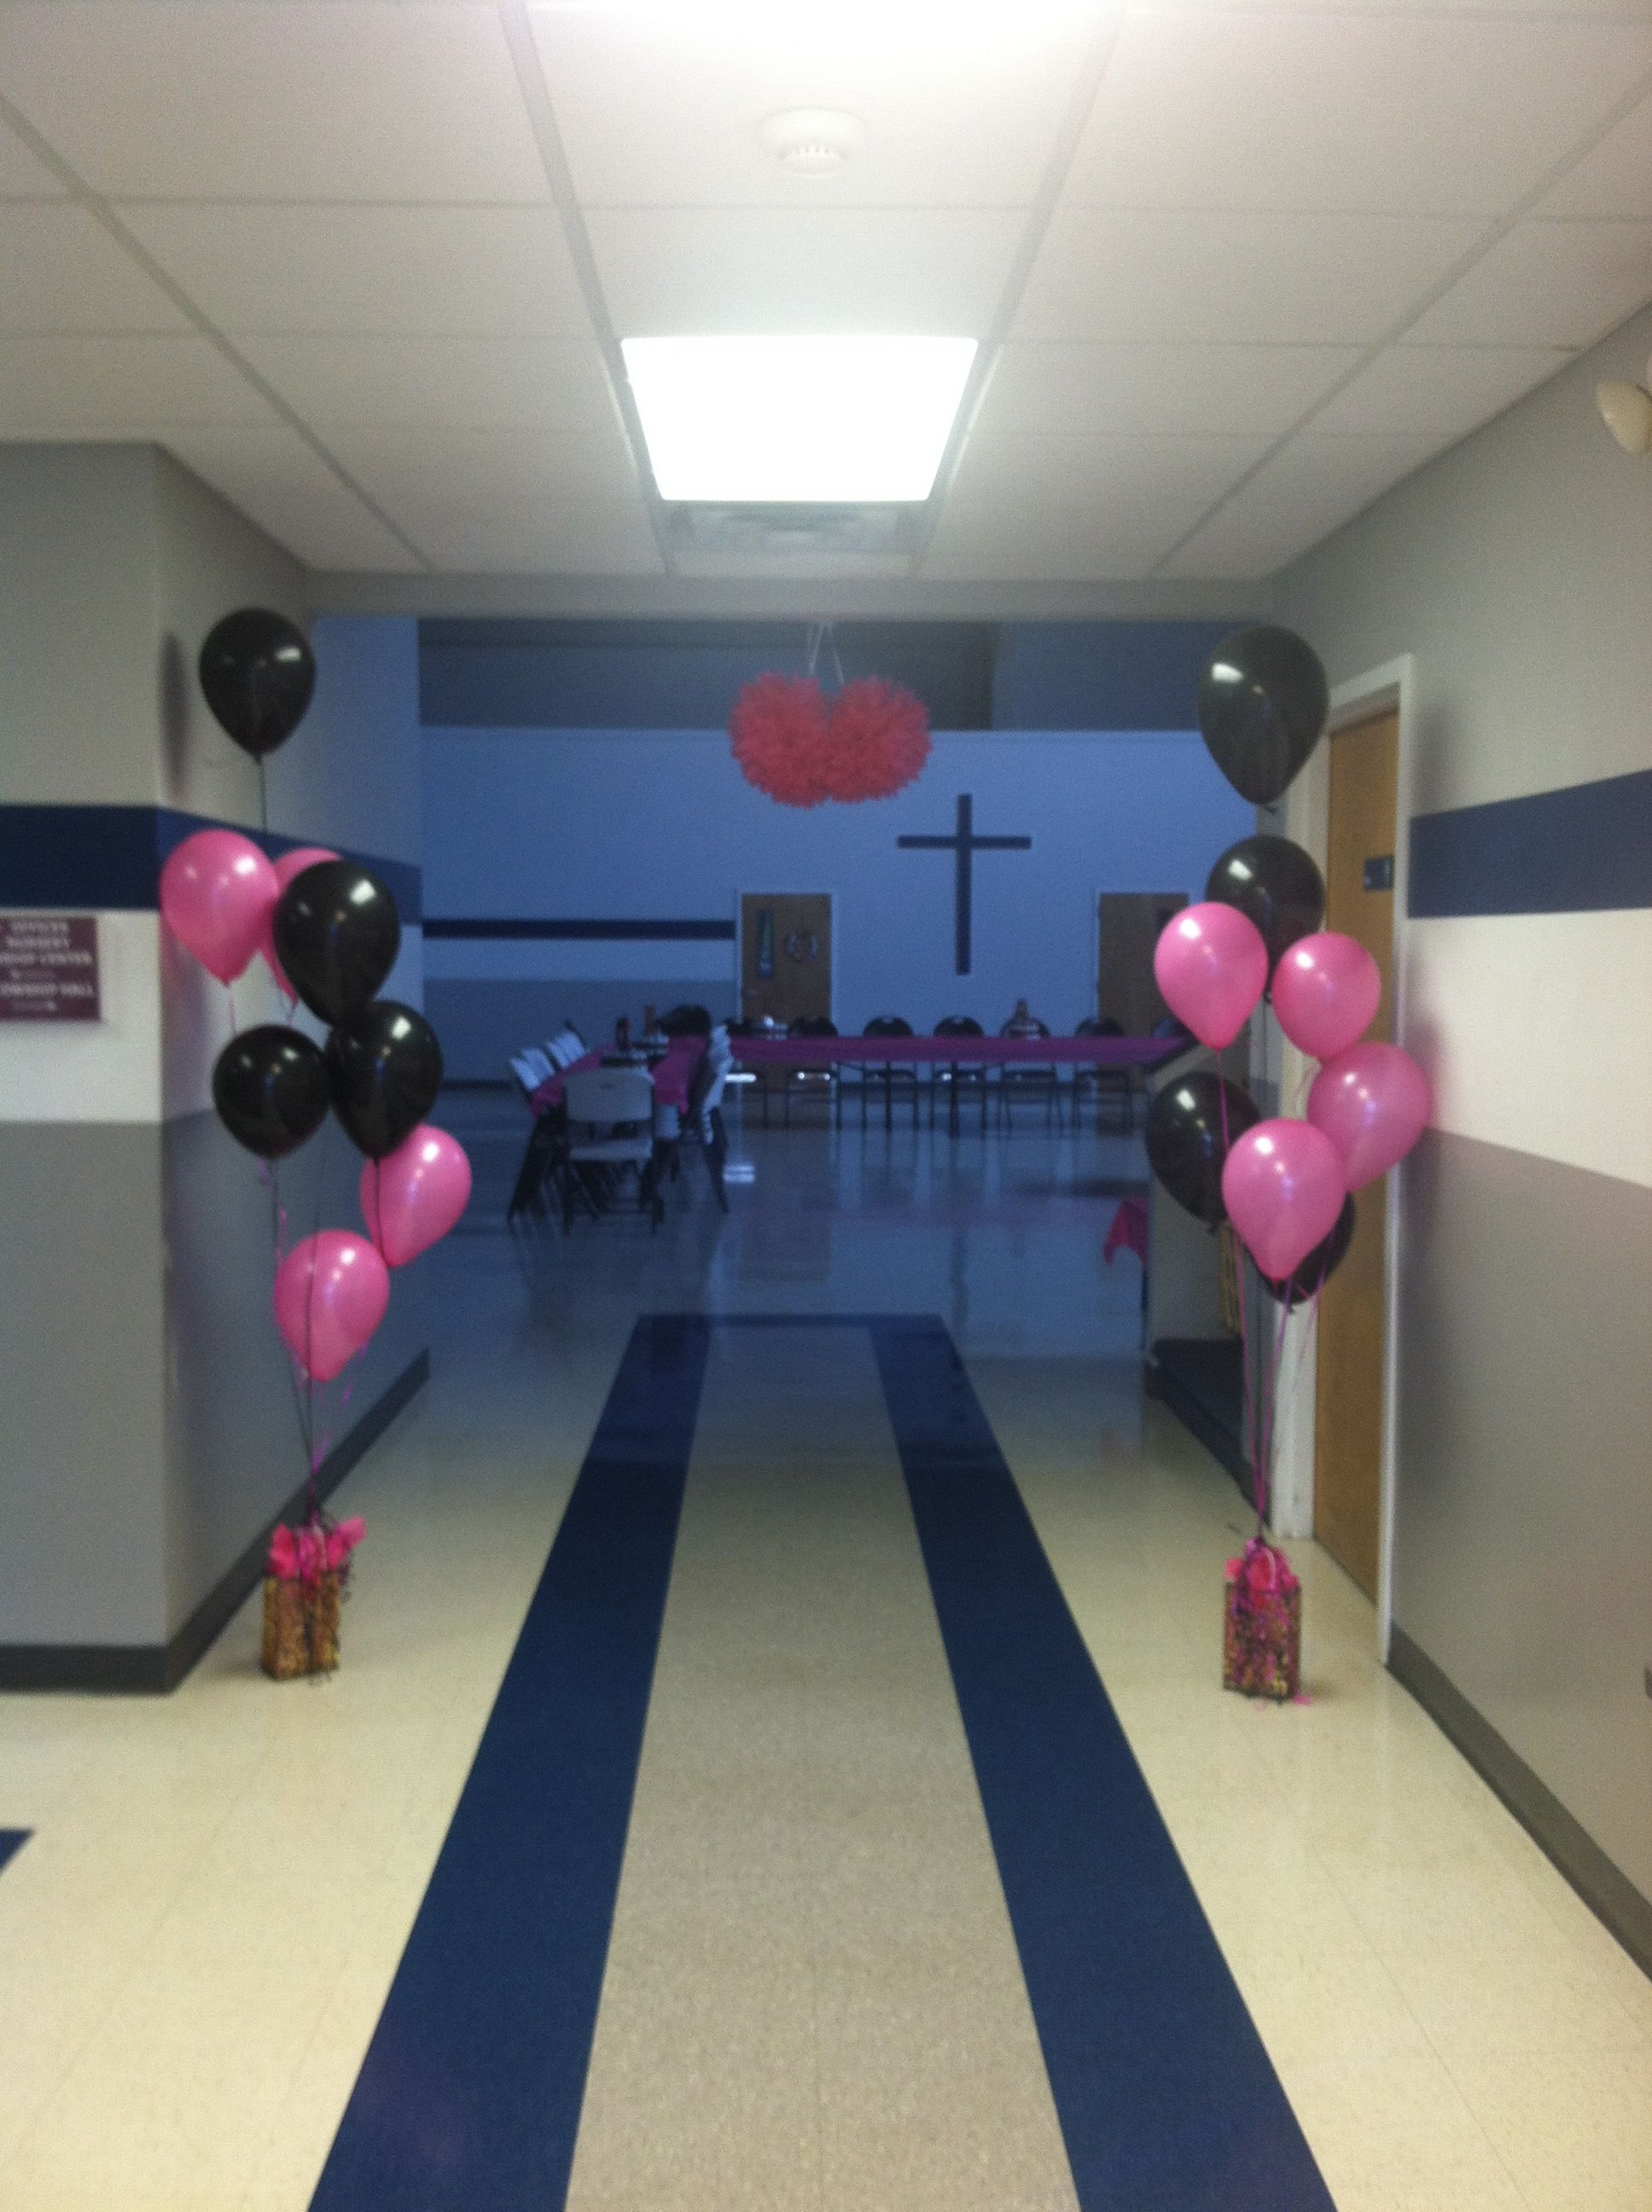 Entrance to the Delainah Rae baby shower